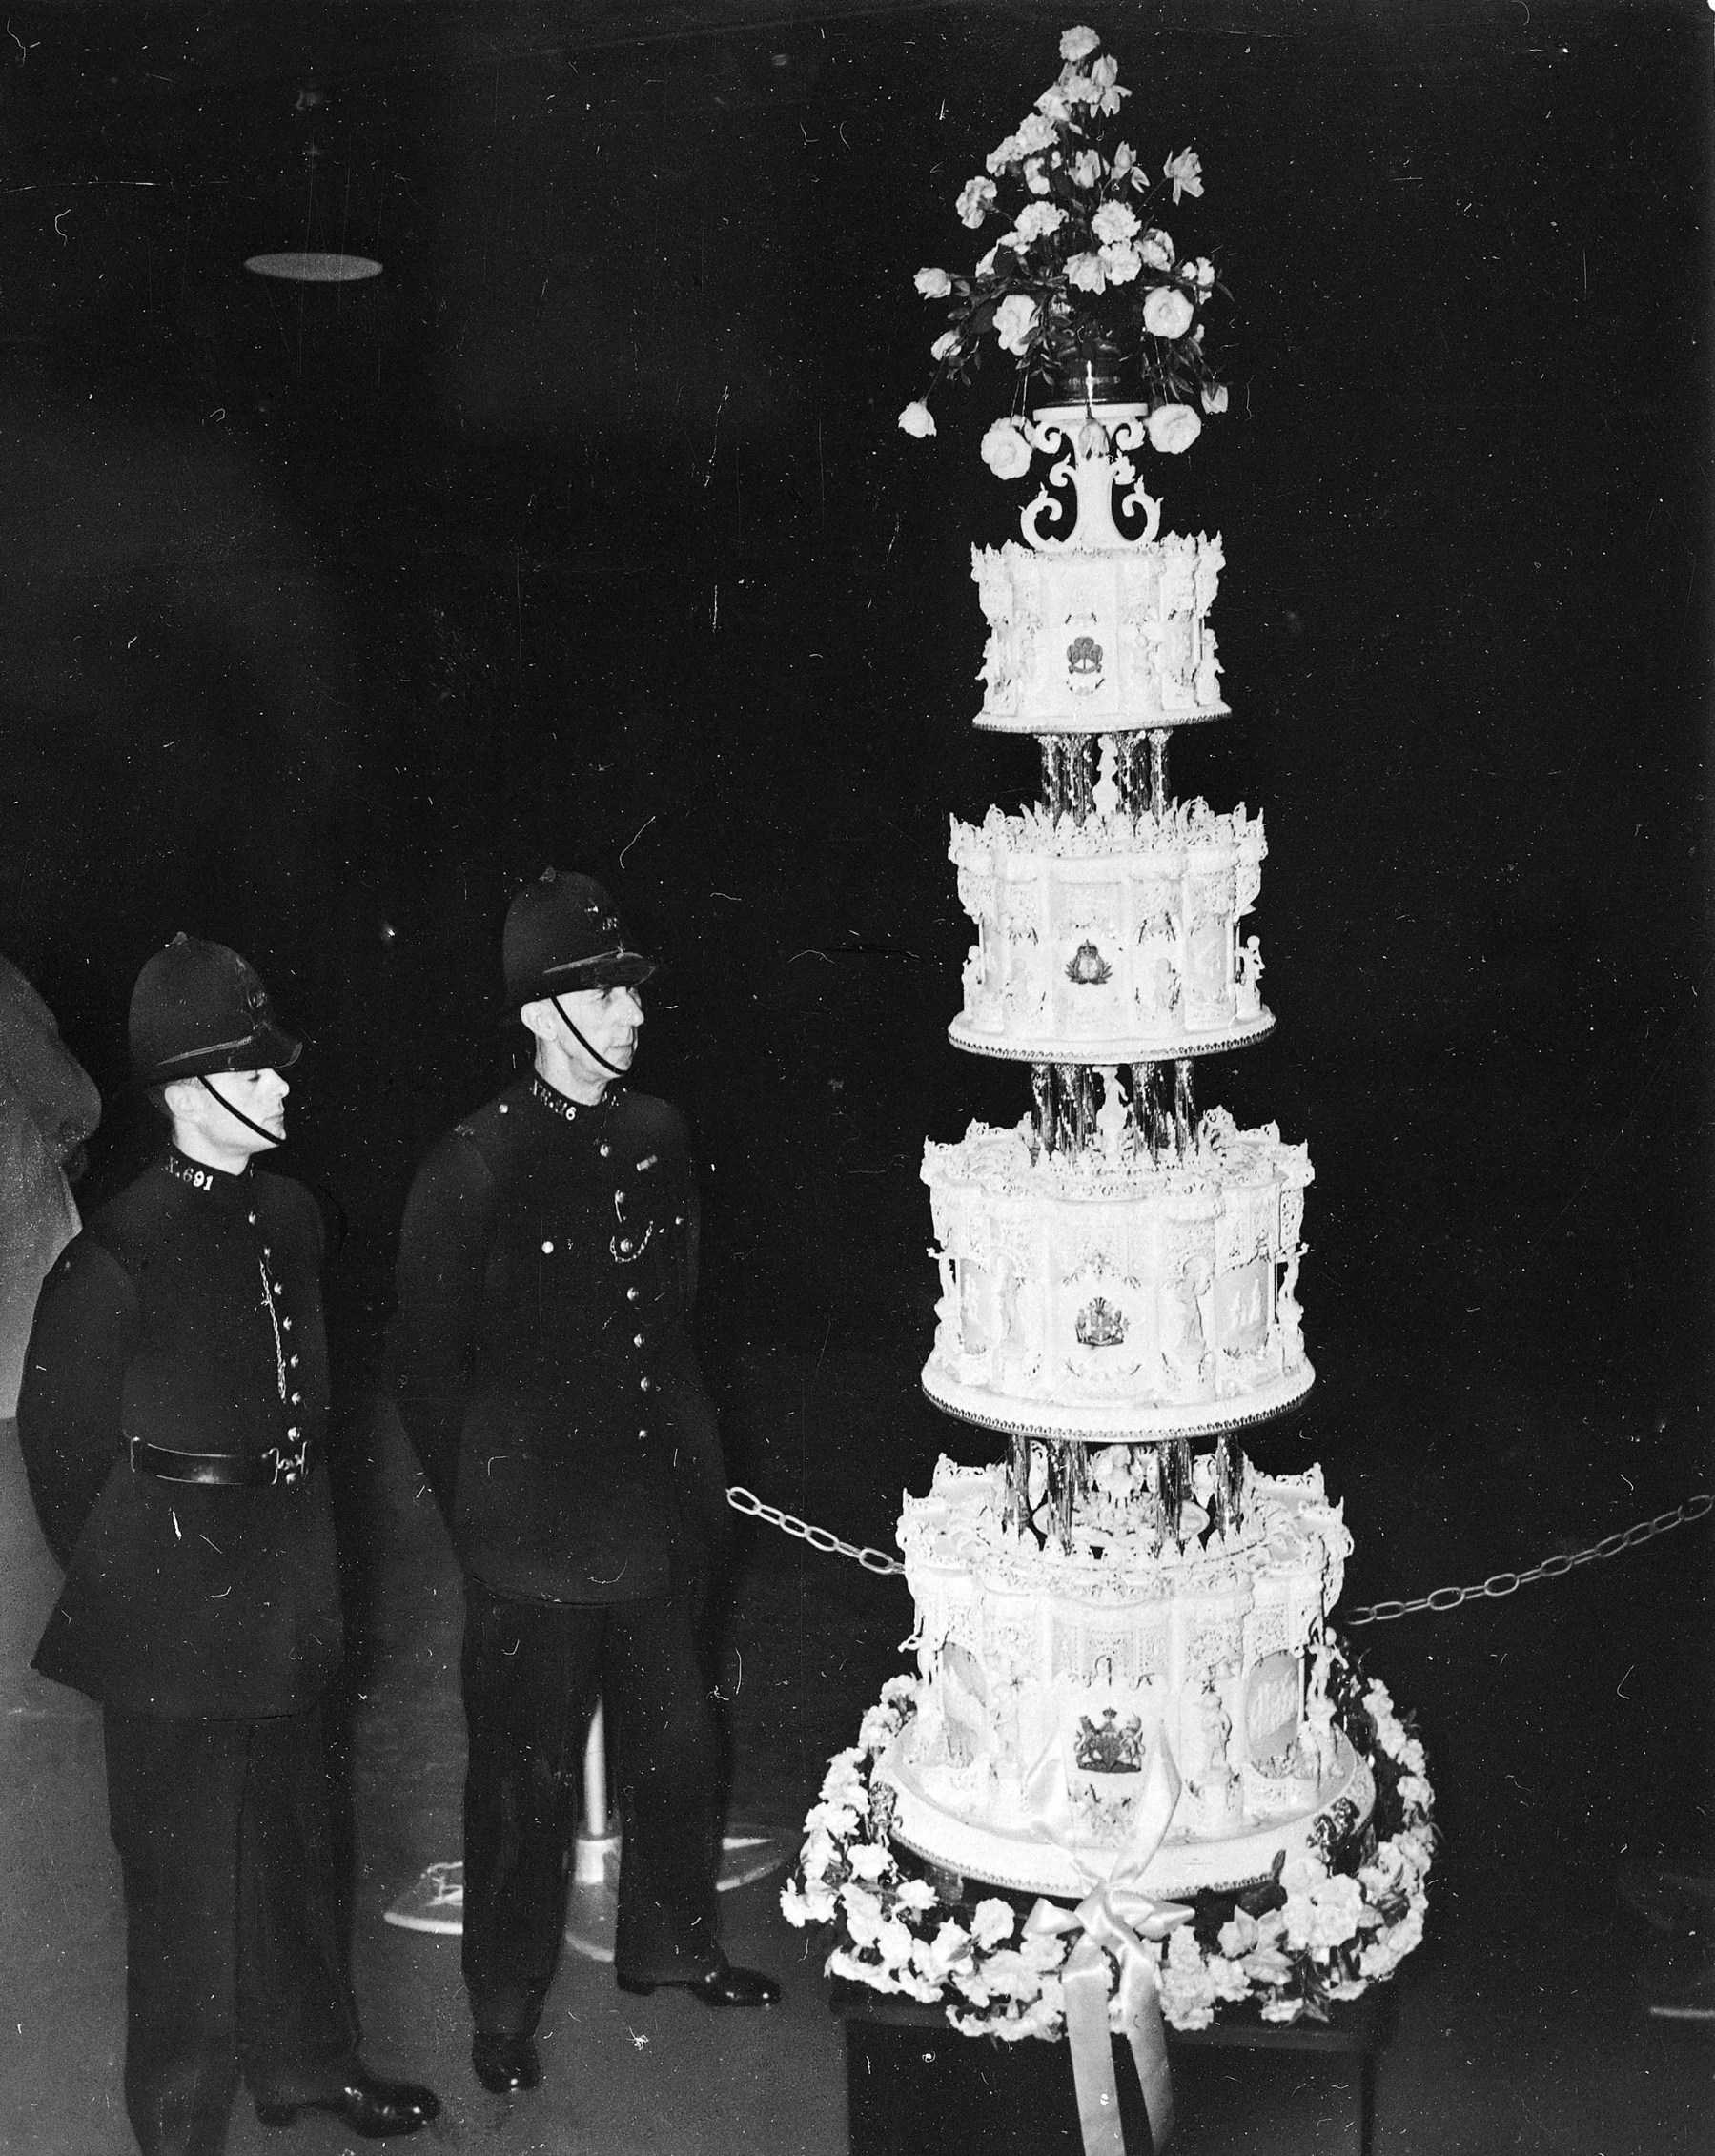 Queen Elizabeth II and Prince Phillip's wedding cake in 1947 weighed 500 pounds, stood at nine feet tall, and took two weeks to make.